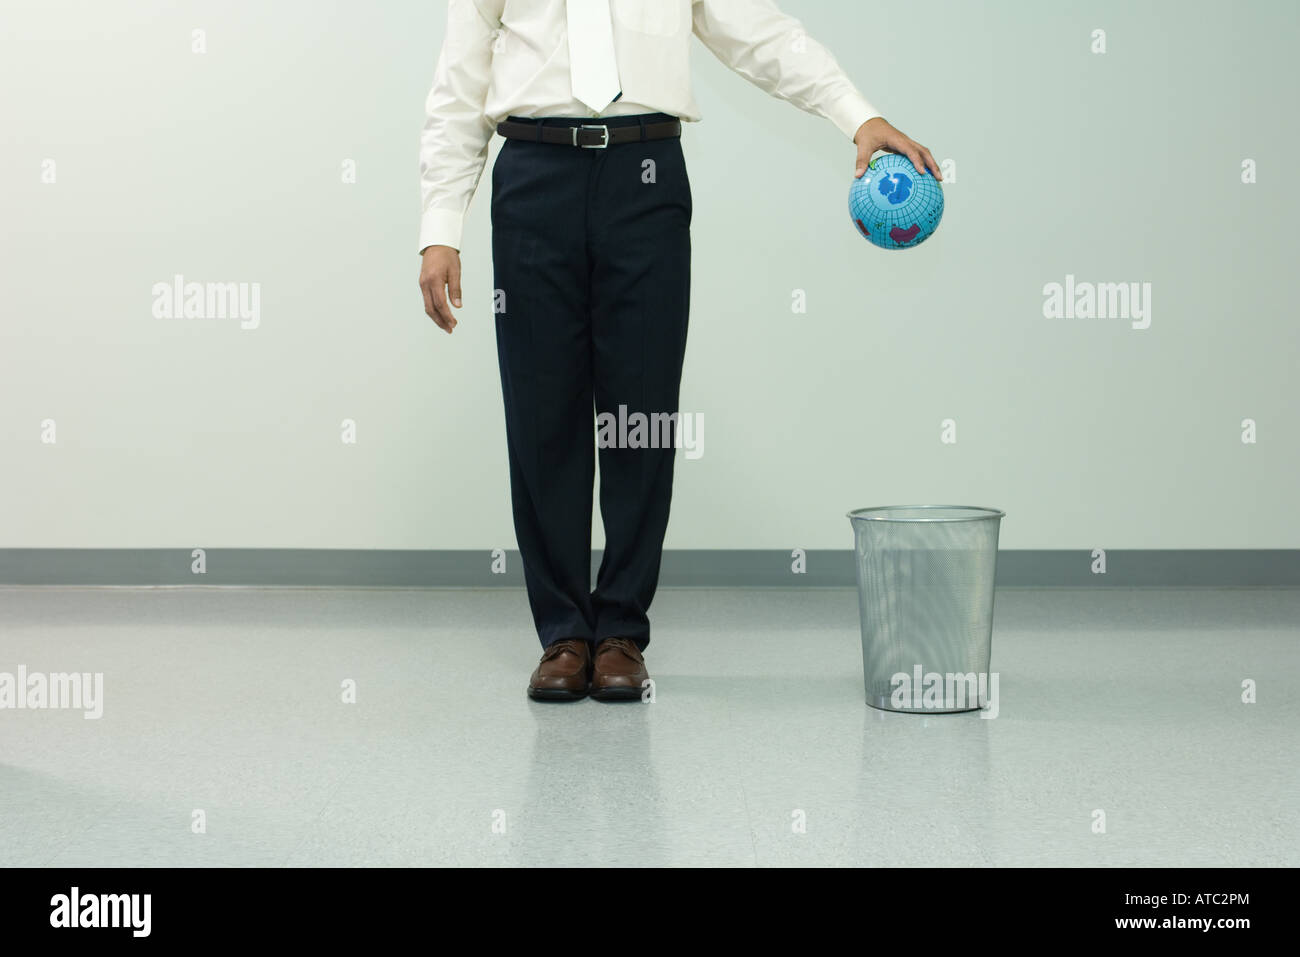 Businessman holding globe over trash can, chest down, front view - Stock Image